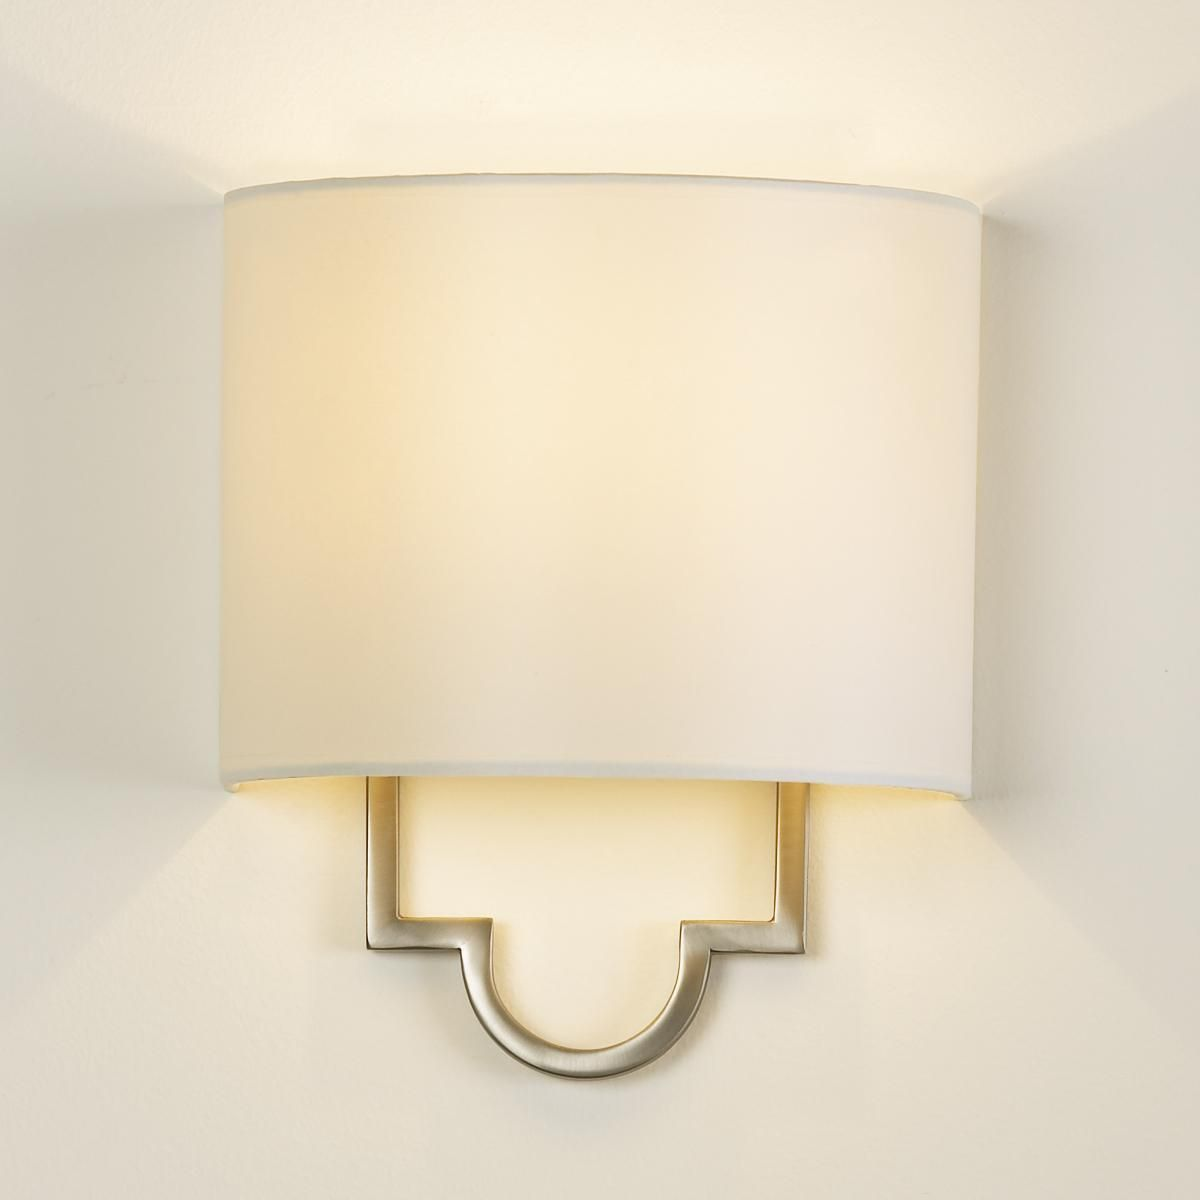 Modern Classic Wall Sconce Wall Sconces Bedroom Modern Wall Sconces Wall Sconces Living Room